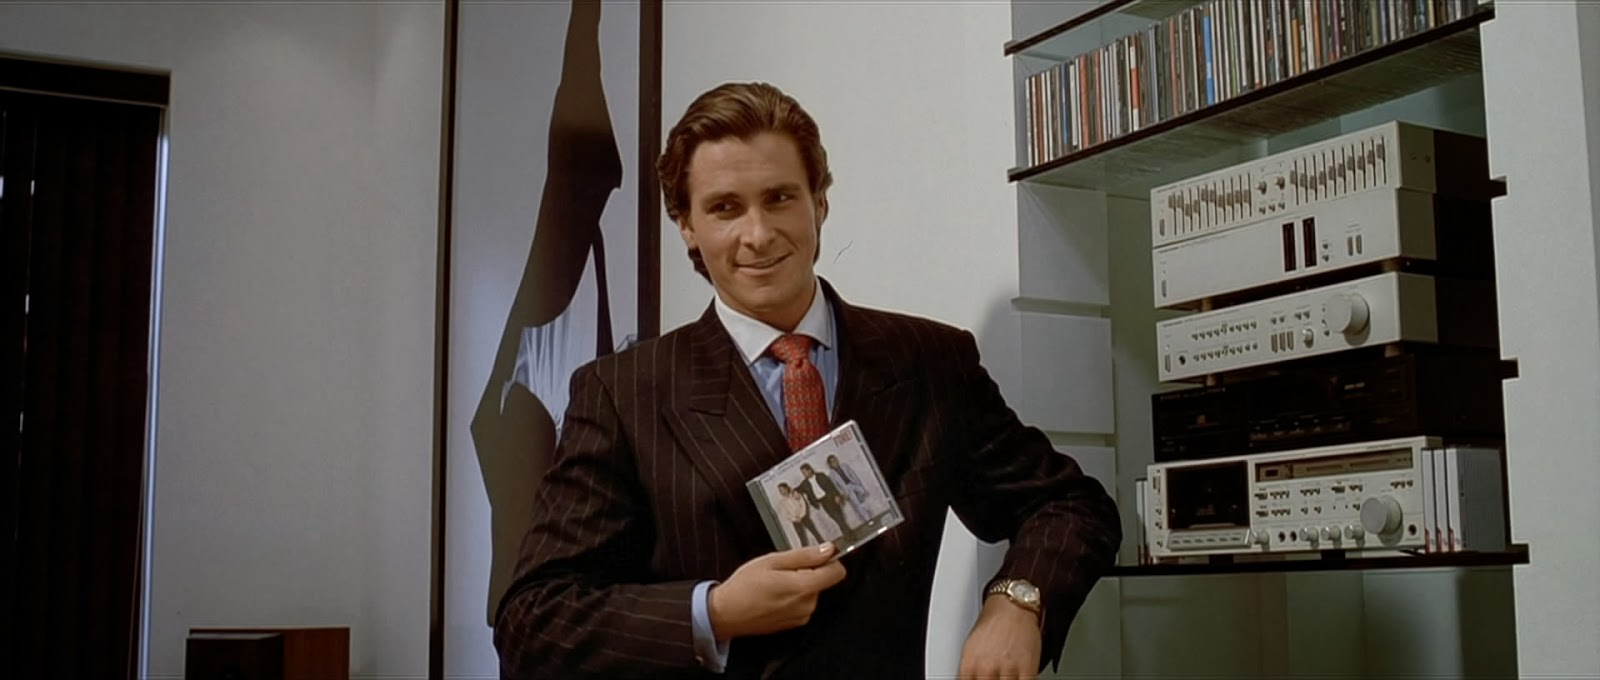 american psycho put patrick bateman and the world he called home american psycho put patrick bateman and the world he called home under a microscope the dissolve